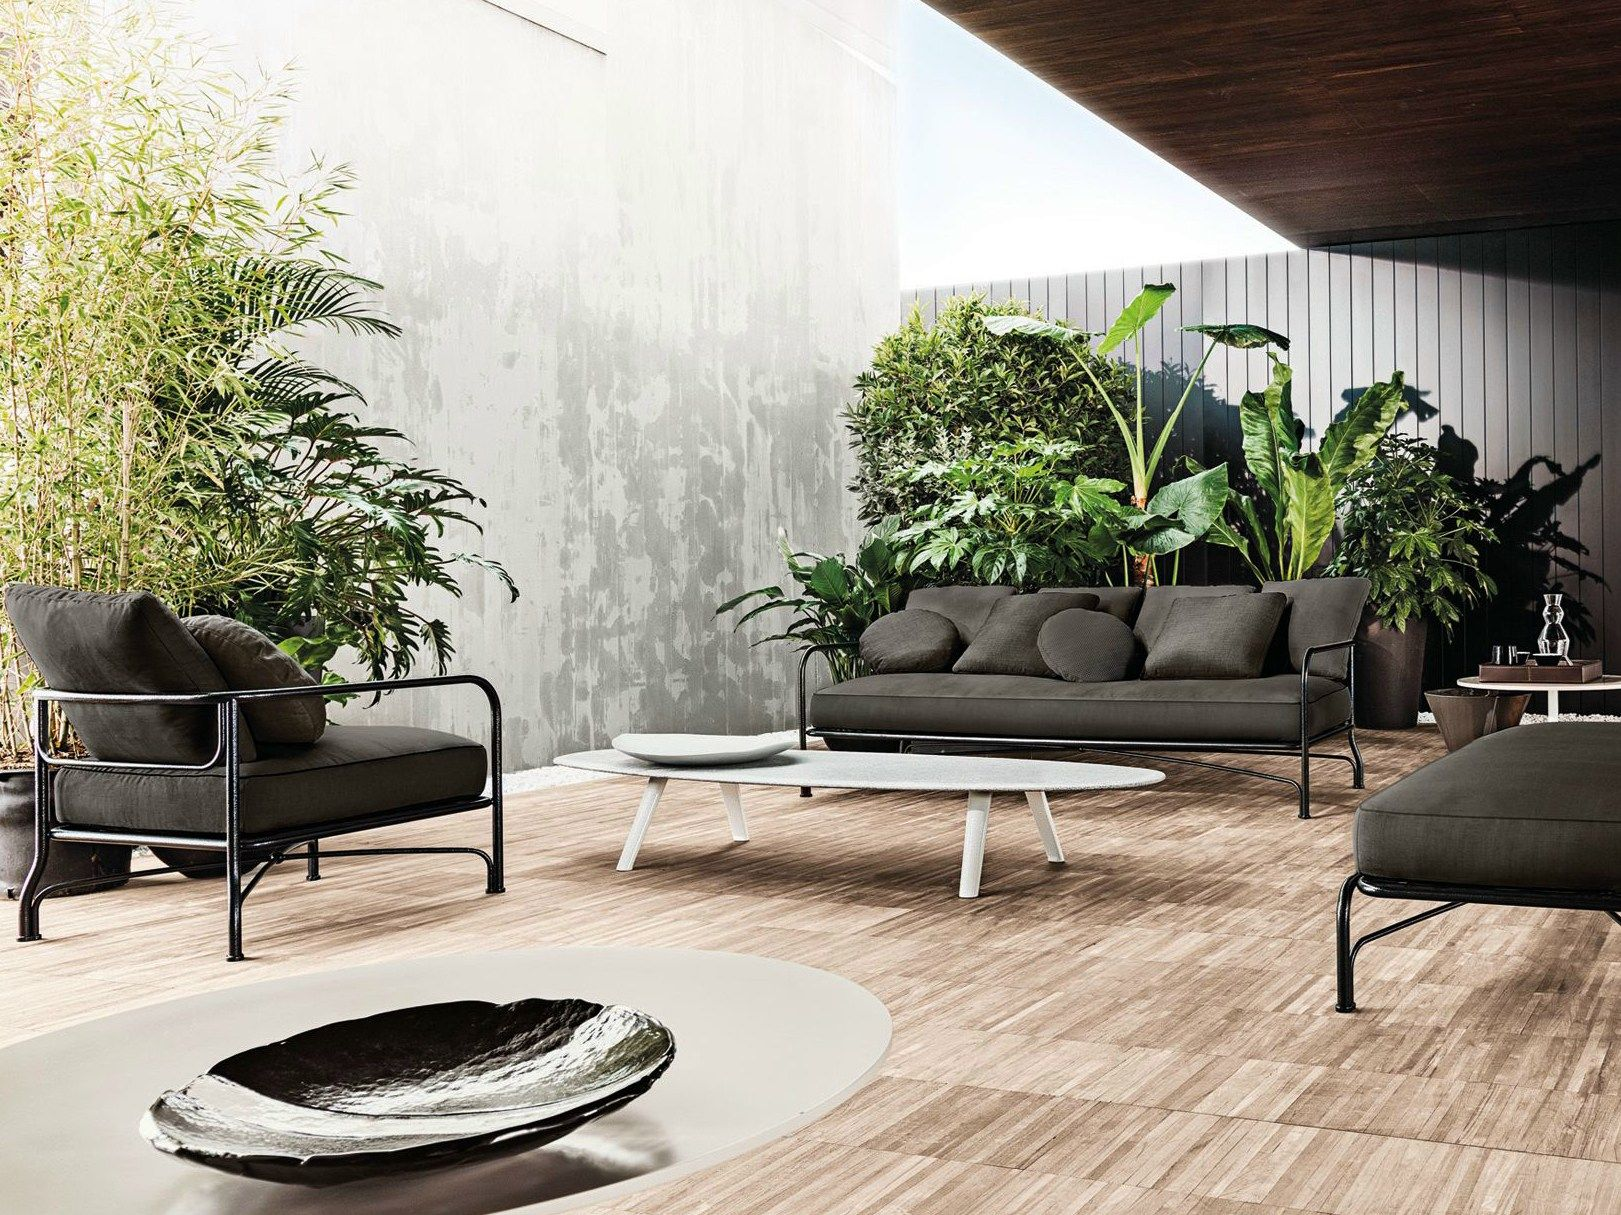 Le parc outdoor collection by minotti for Arredi outdoor